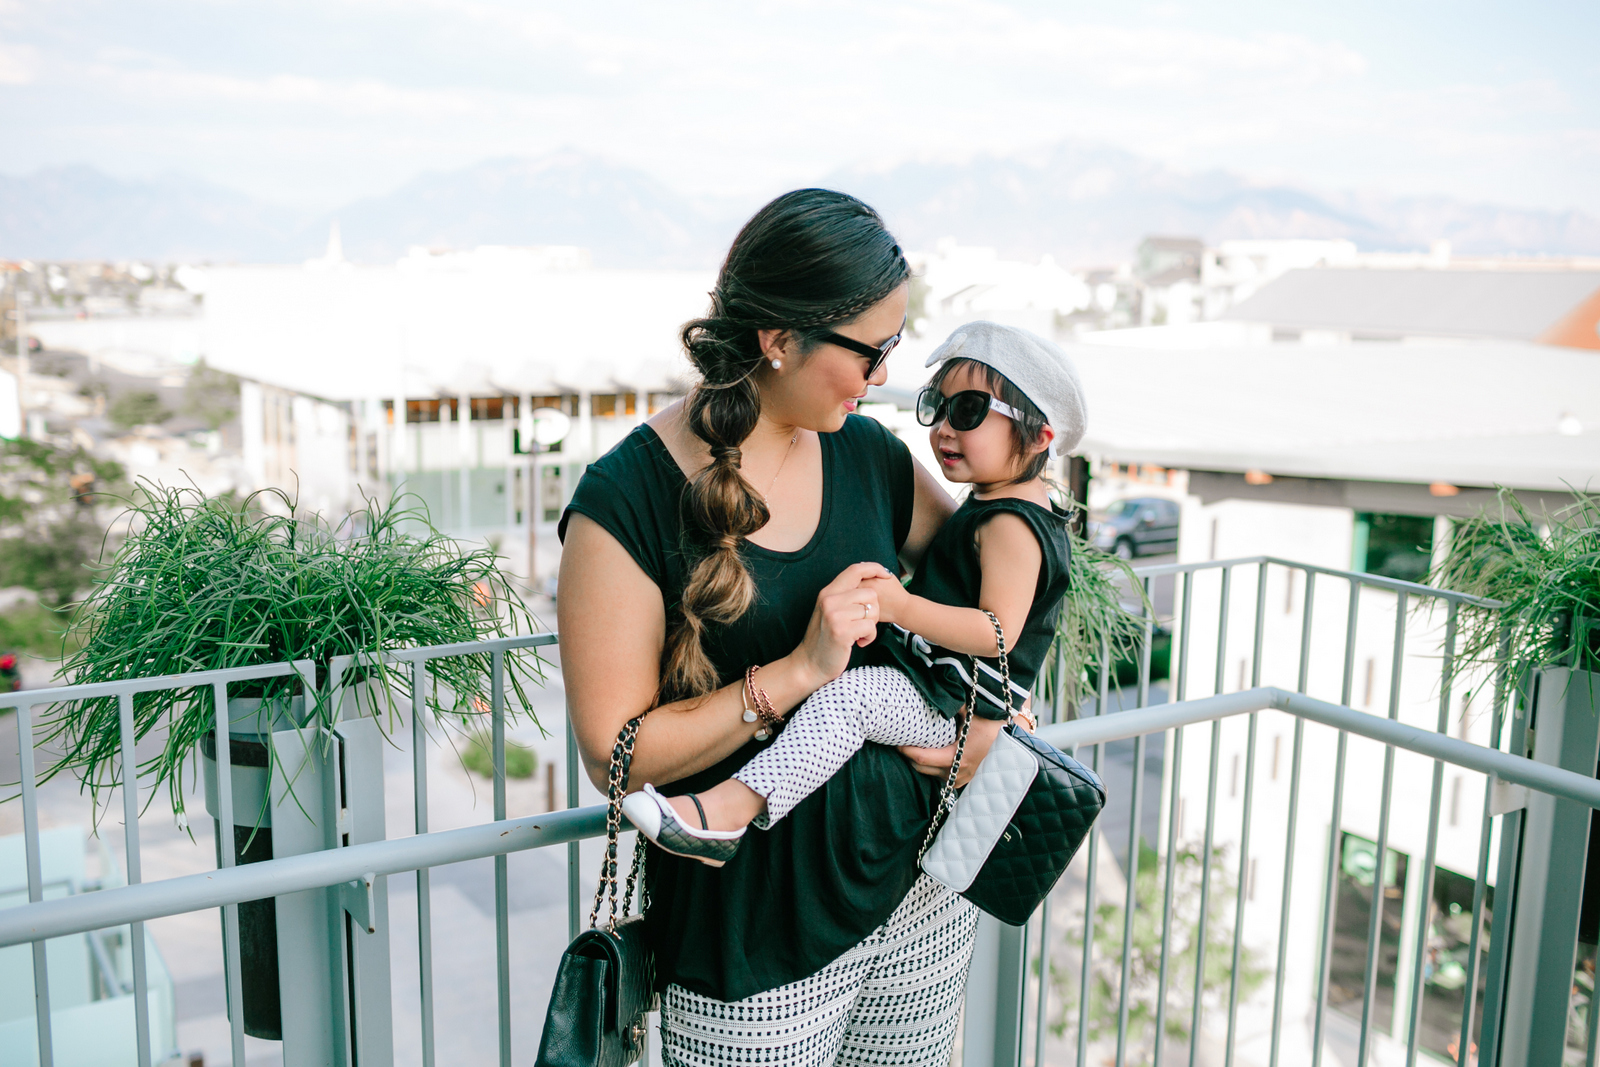 Mommy and me outfits: wearing a black and white outfit